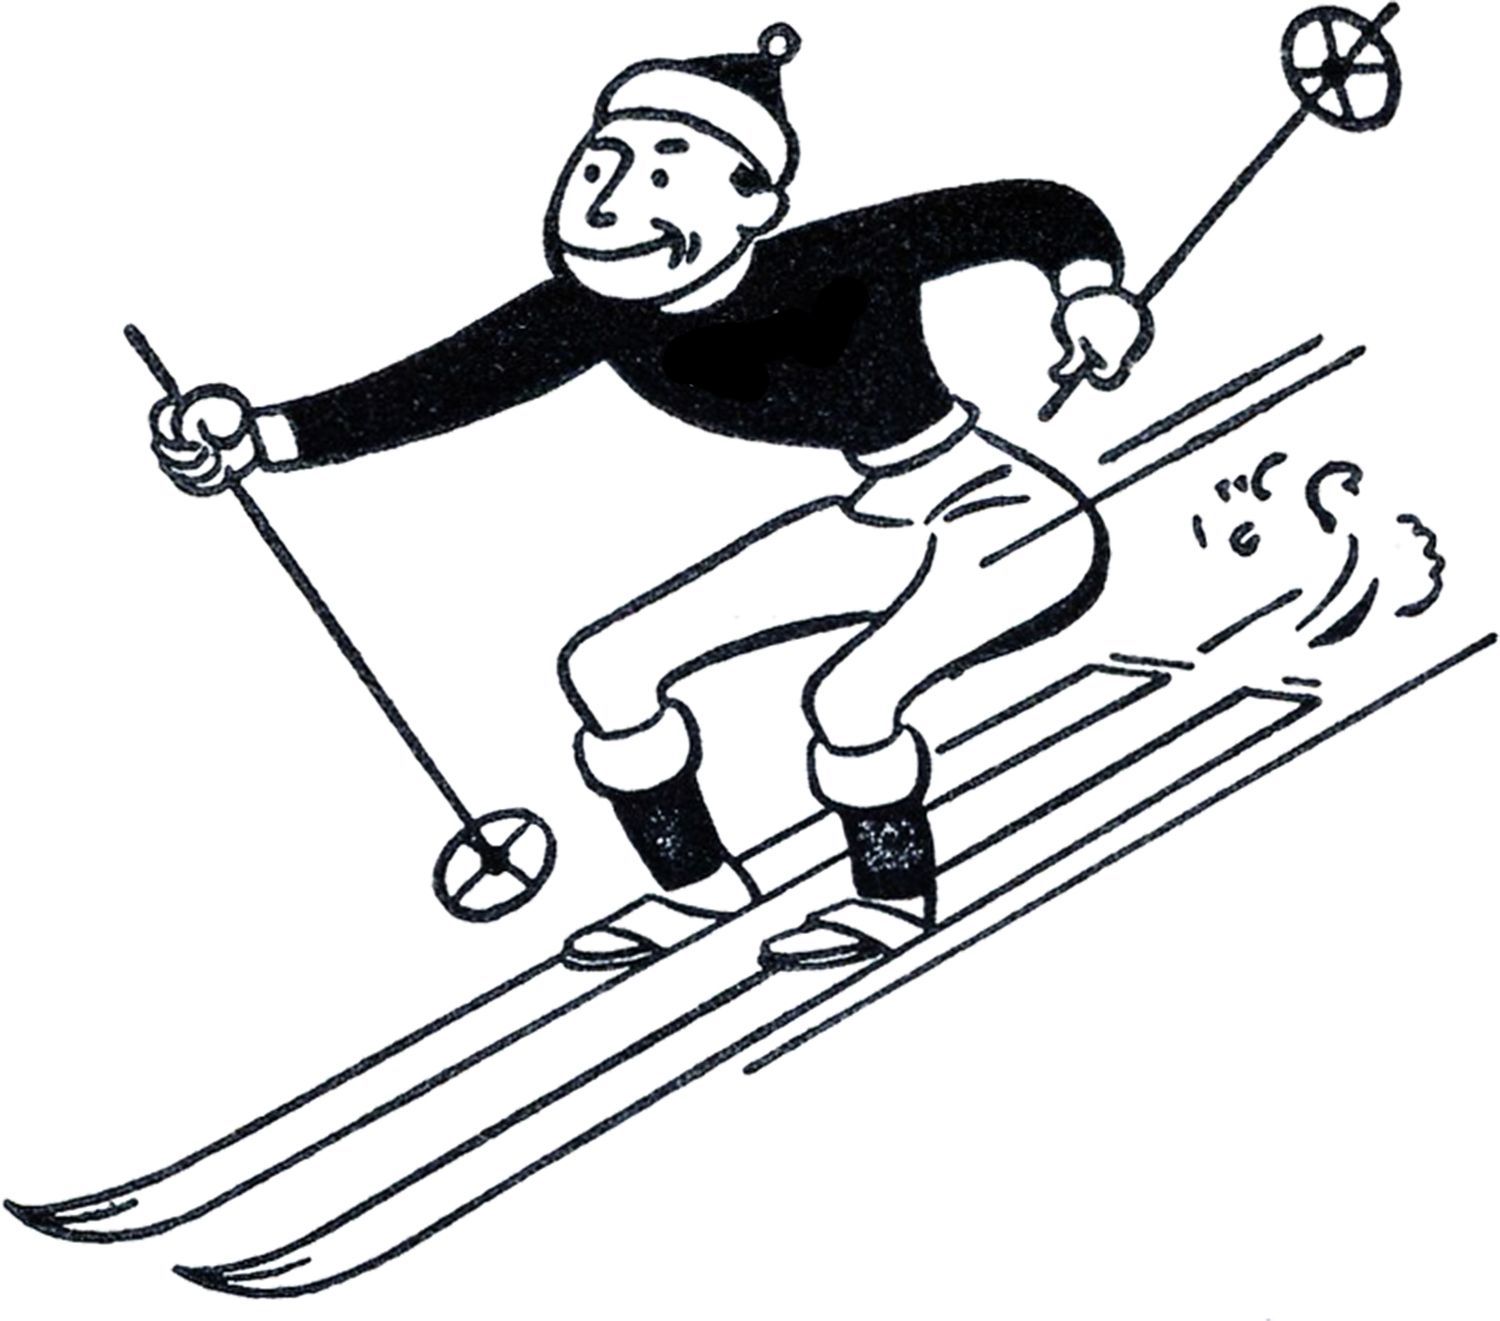 1500x1321 Funny Retro Skiing Clipart Graphics Fairy, Vintage Images